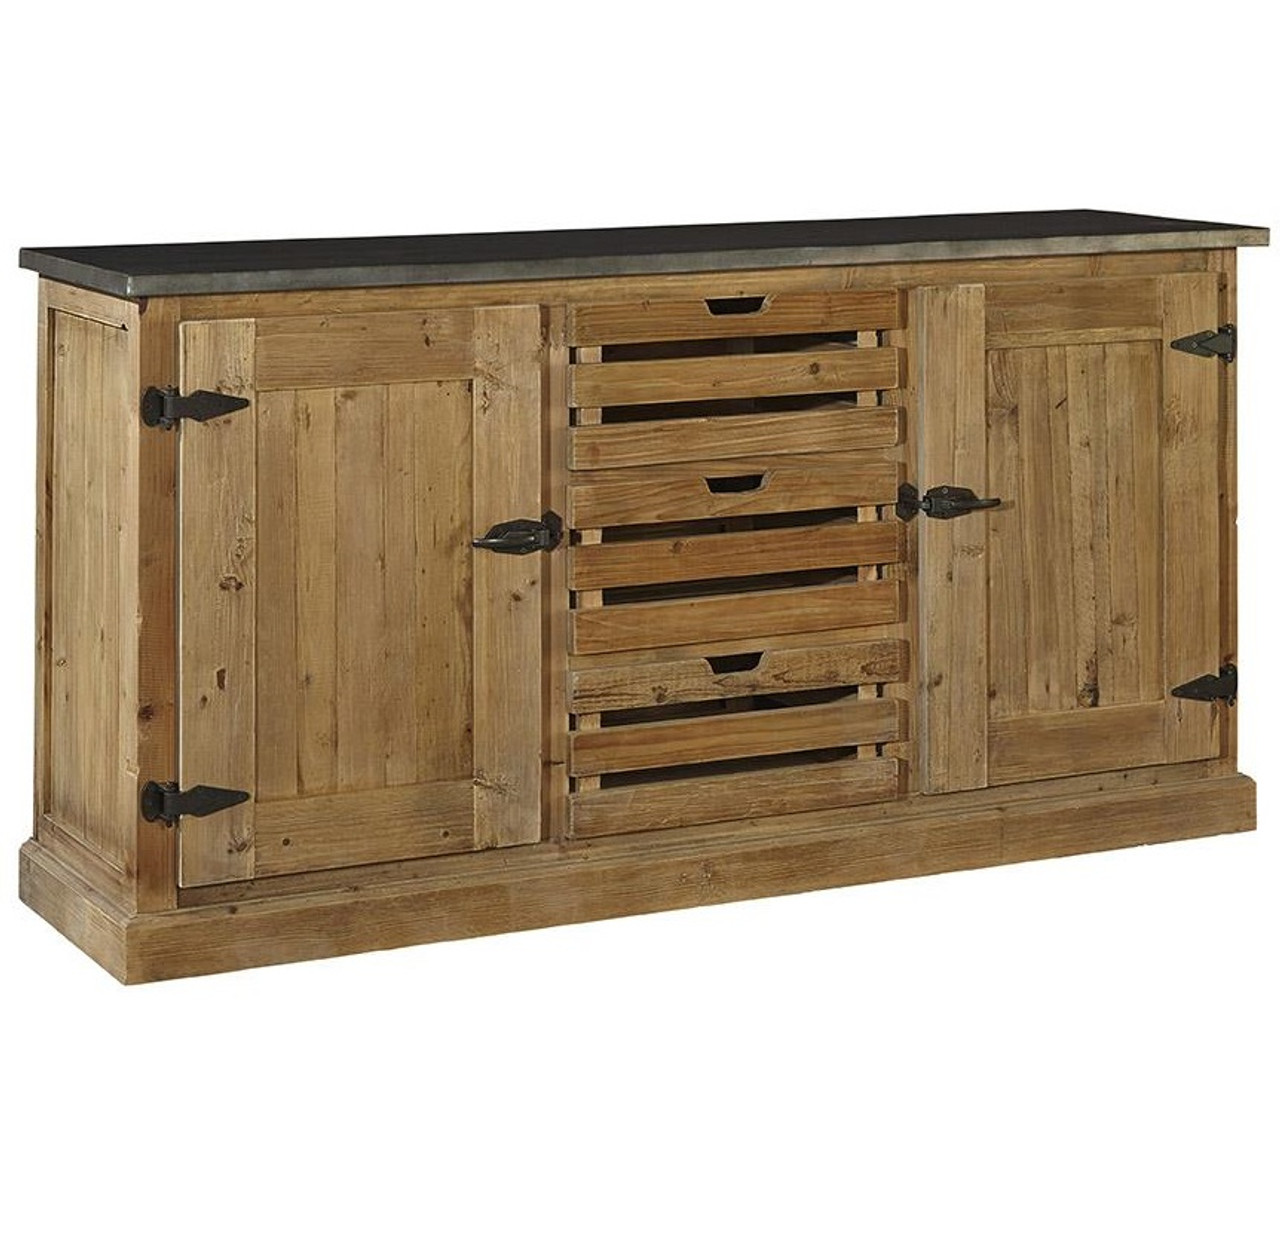 Farmhouse Zinc Top Reclaimed Wood Buffet Sideboard Furniture